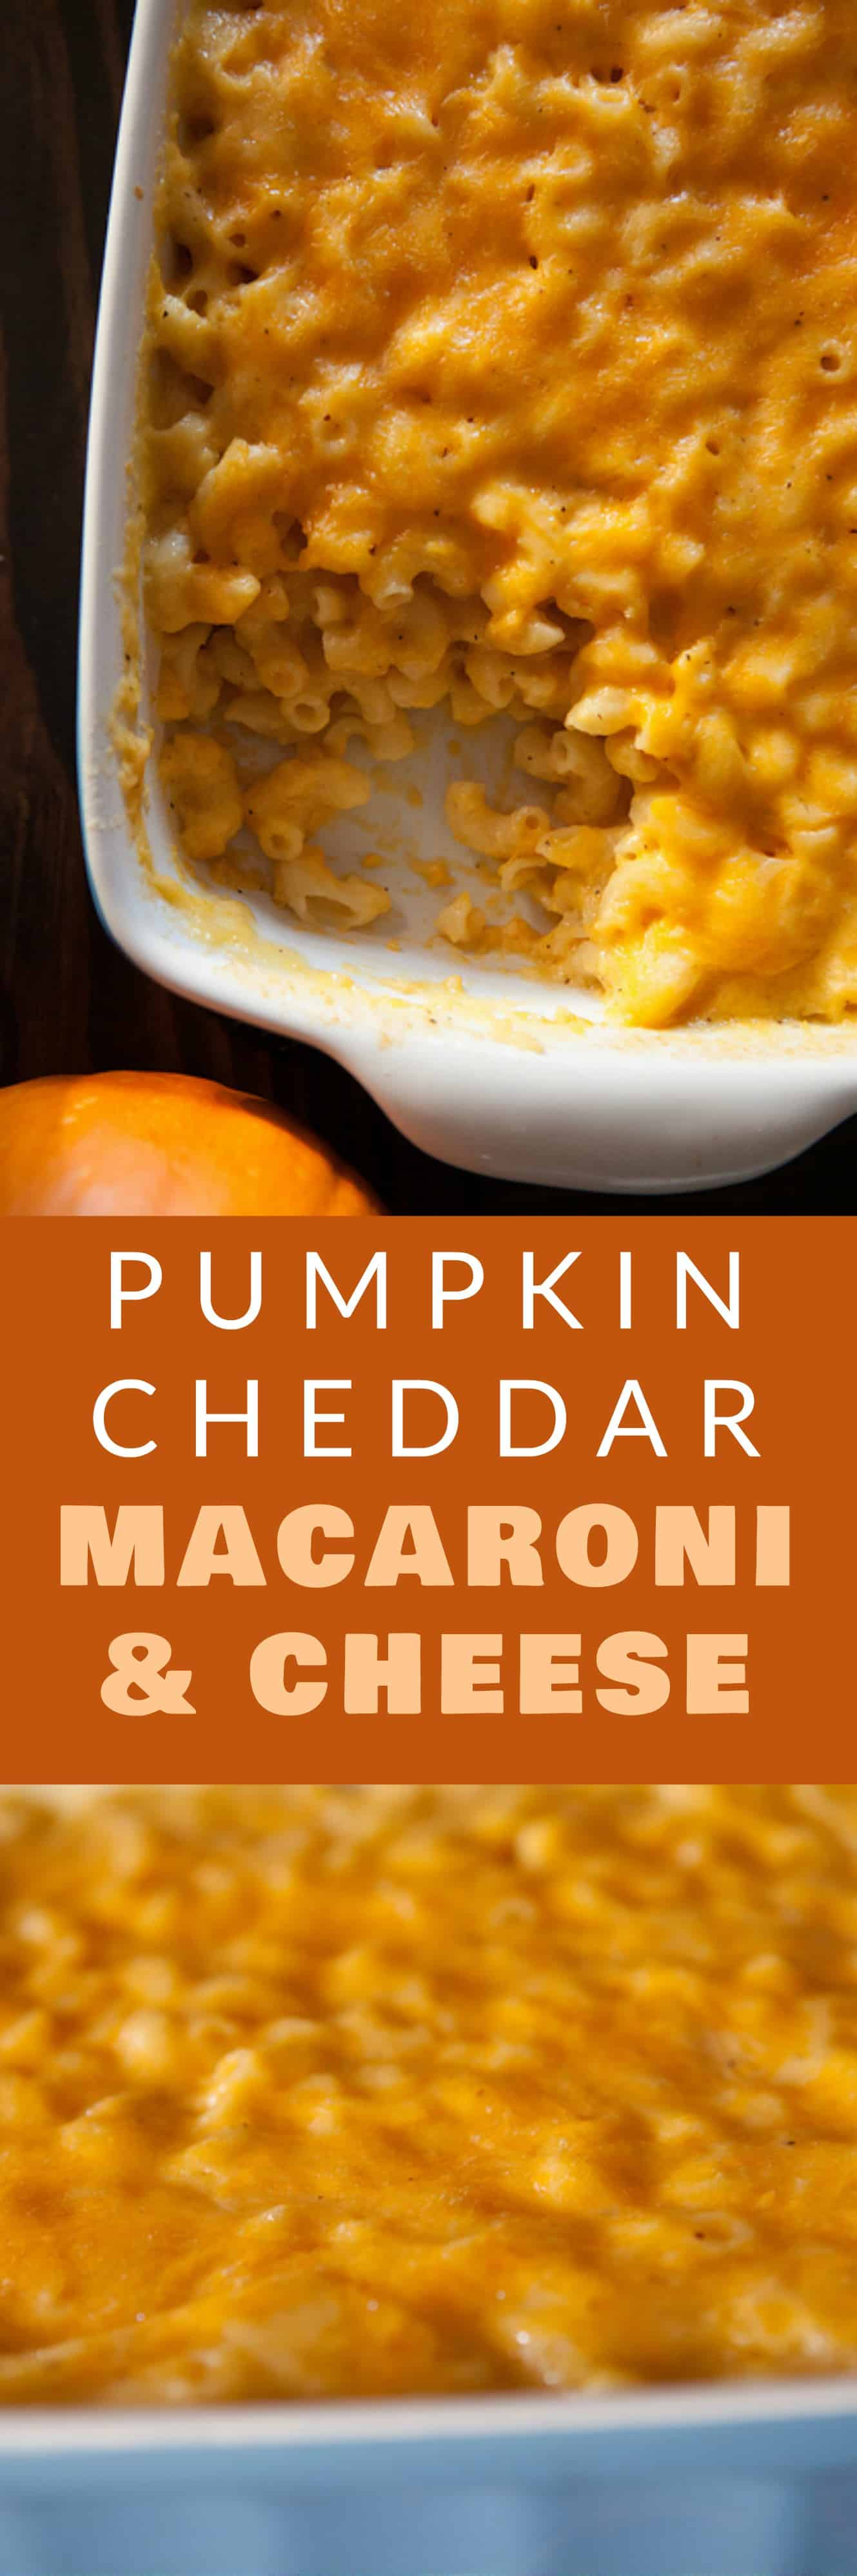 PUMPKIN CHEDDAR Macaroni and Cheese! This is a pure comfort food recipe that's so easy to make! This cheesy macaroni and cheese uses 1 cup pumpkin puree and 2 cups shredded cheddar cheese. It's one of my favorite pumpkin recipes!